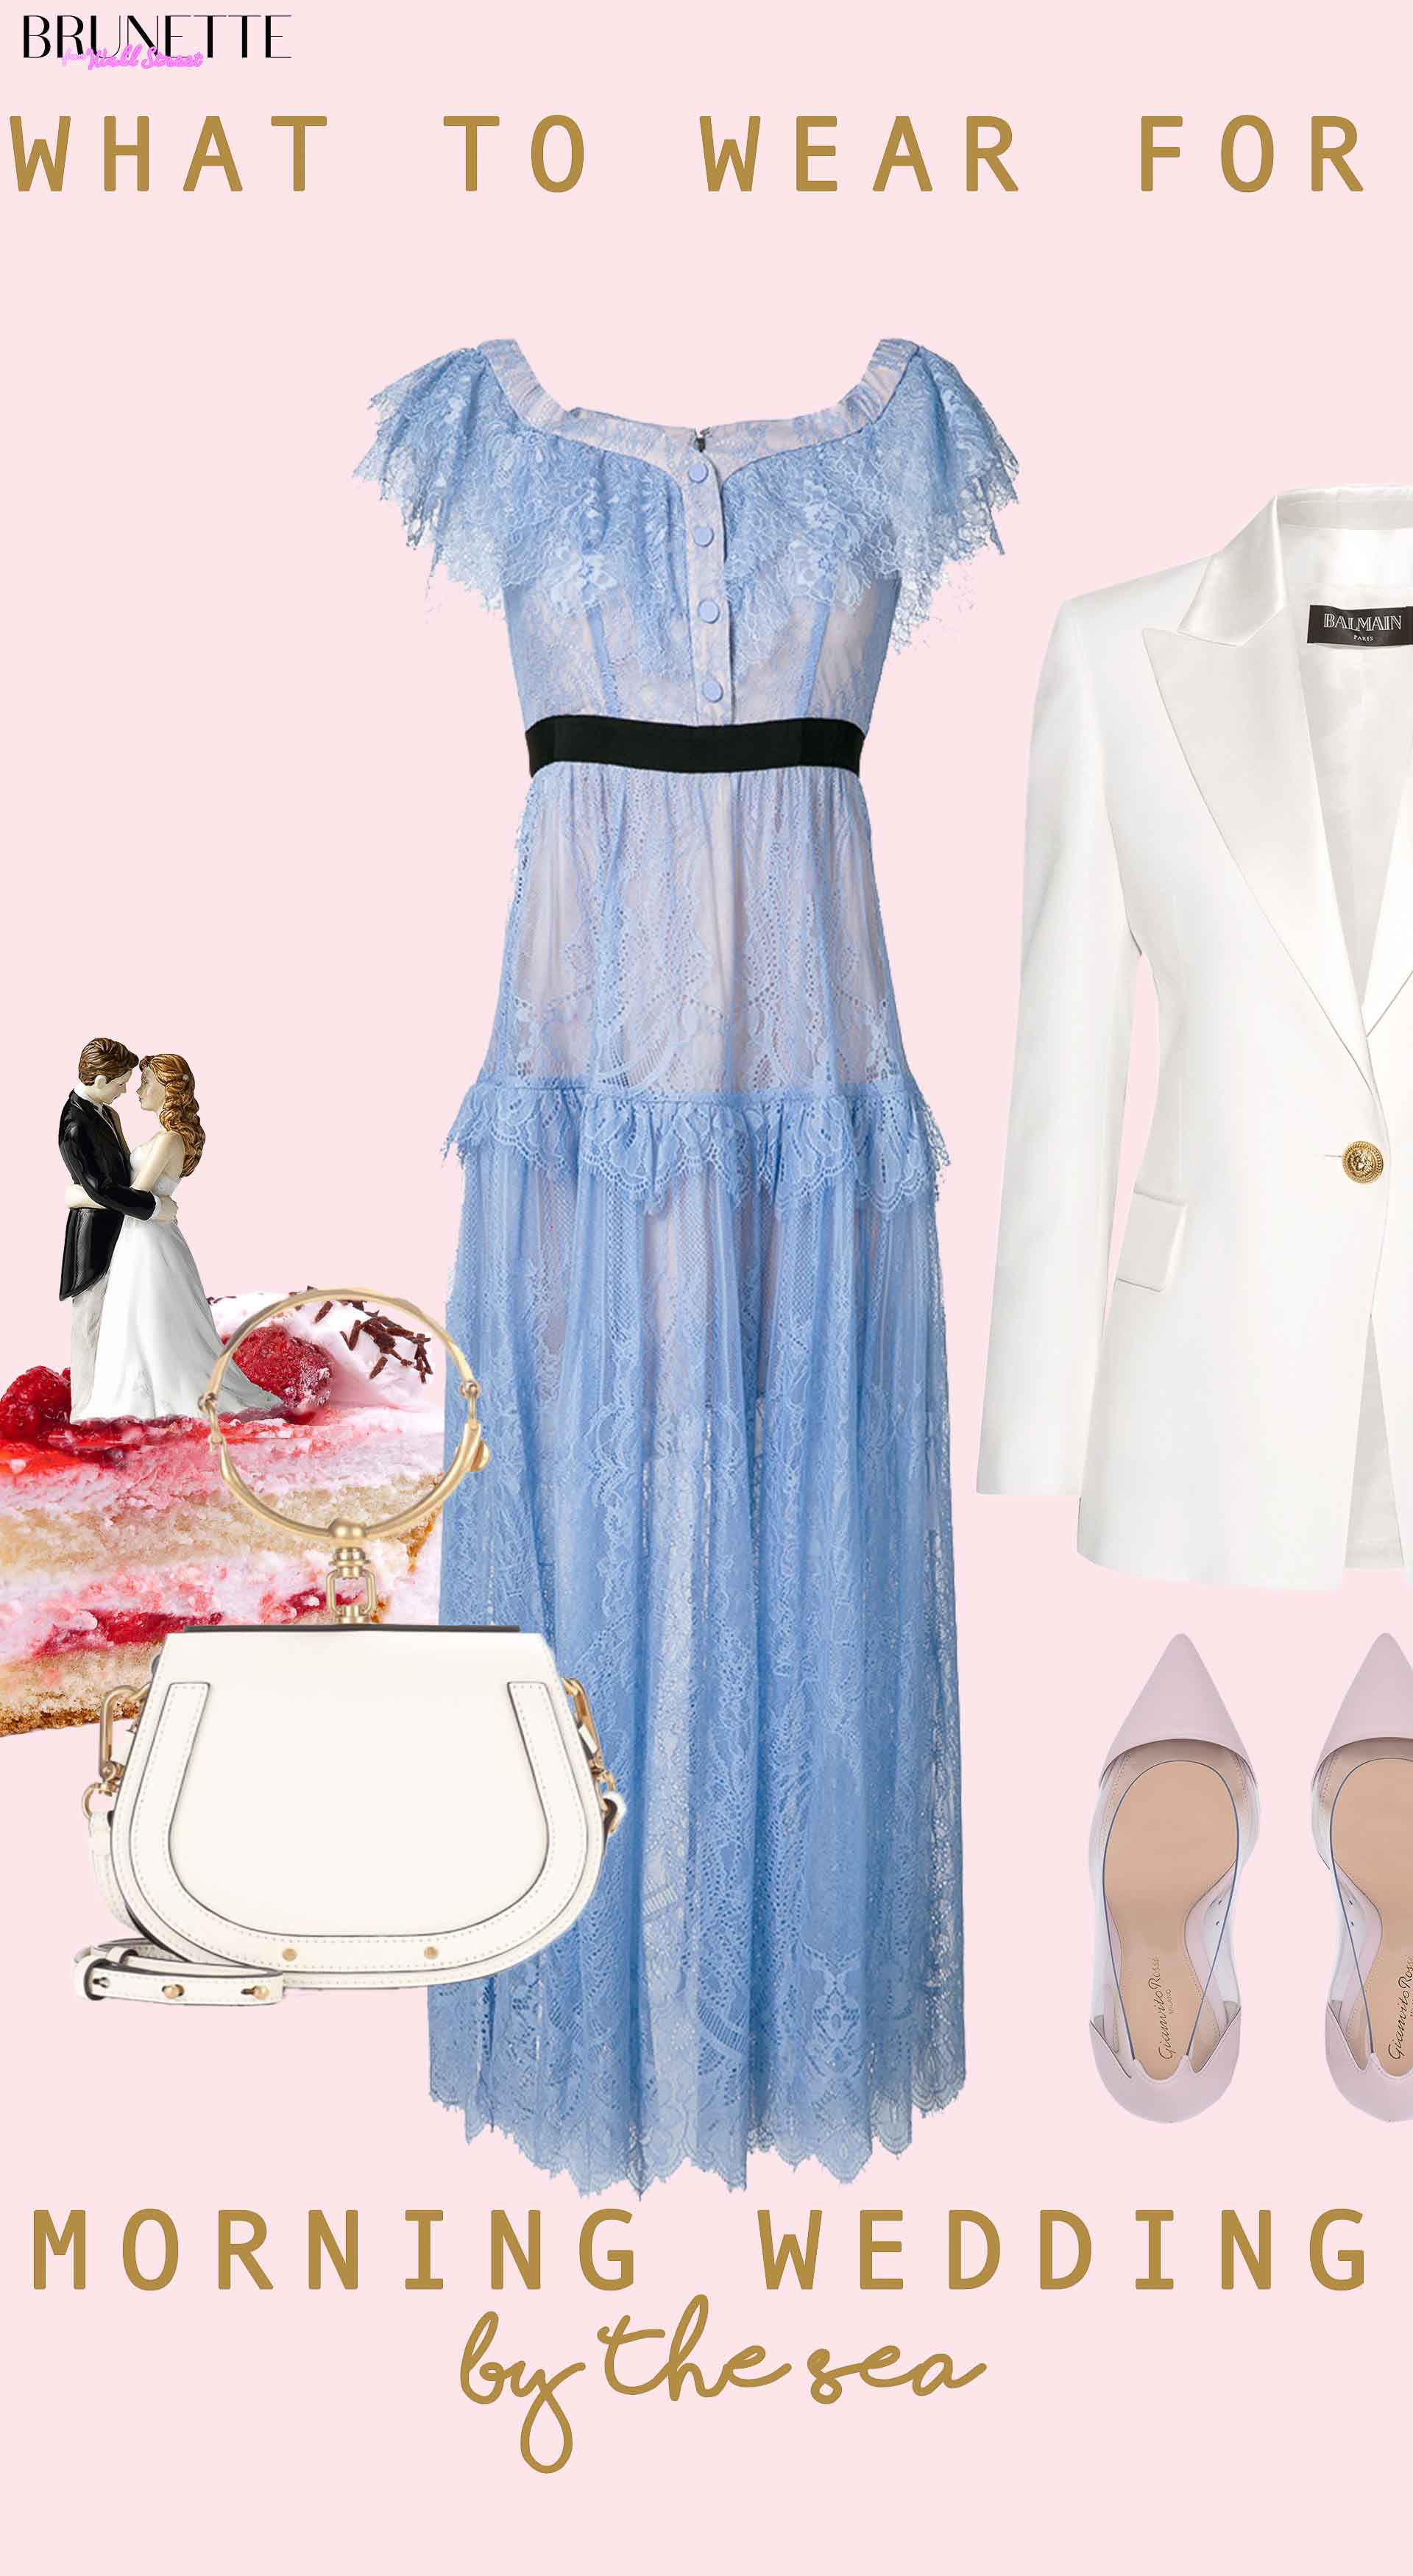 Blue lace dress from Self-Portrait, white Balmain blazer, Gianvito Rossi pumps, white Chloe Nile bag, Gucci bloom perfume, strawberry wedding cake with text overlay What to wear for Morning Wedding by the sea